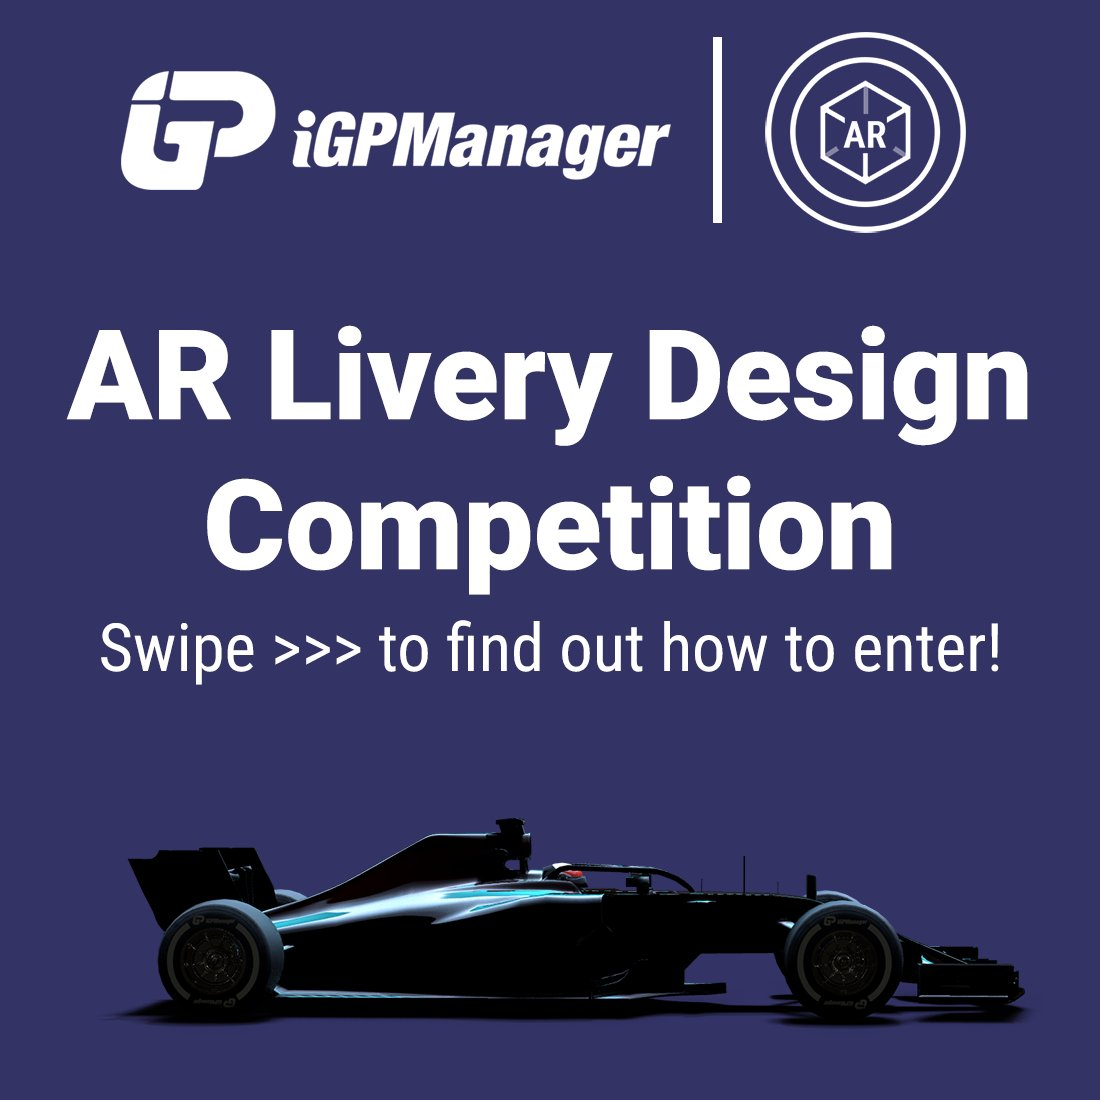 Announcing our AR Livery Design Competition! Reply with your iGP Manager liveries in the AR Livery Editor as detailed in the post, and the winning entry will get 50 tokens!  Competition entry closes at midnight on the 31st of September, so get creative with your AR creations! https://t.co/CeAcxrUGUQ